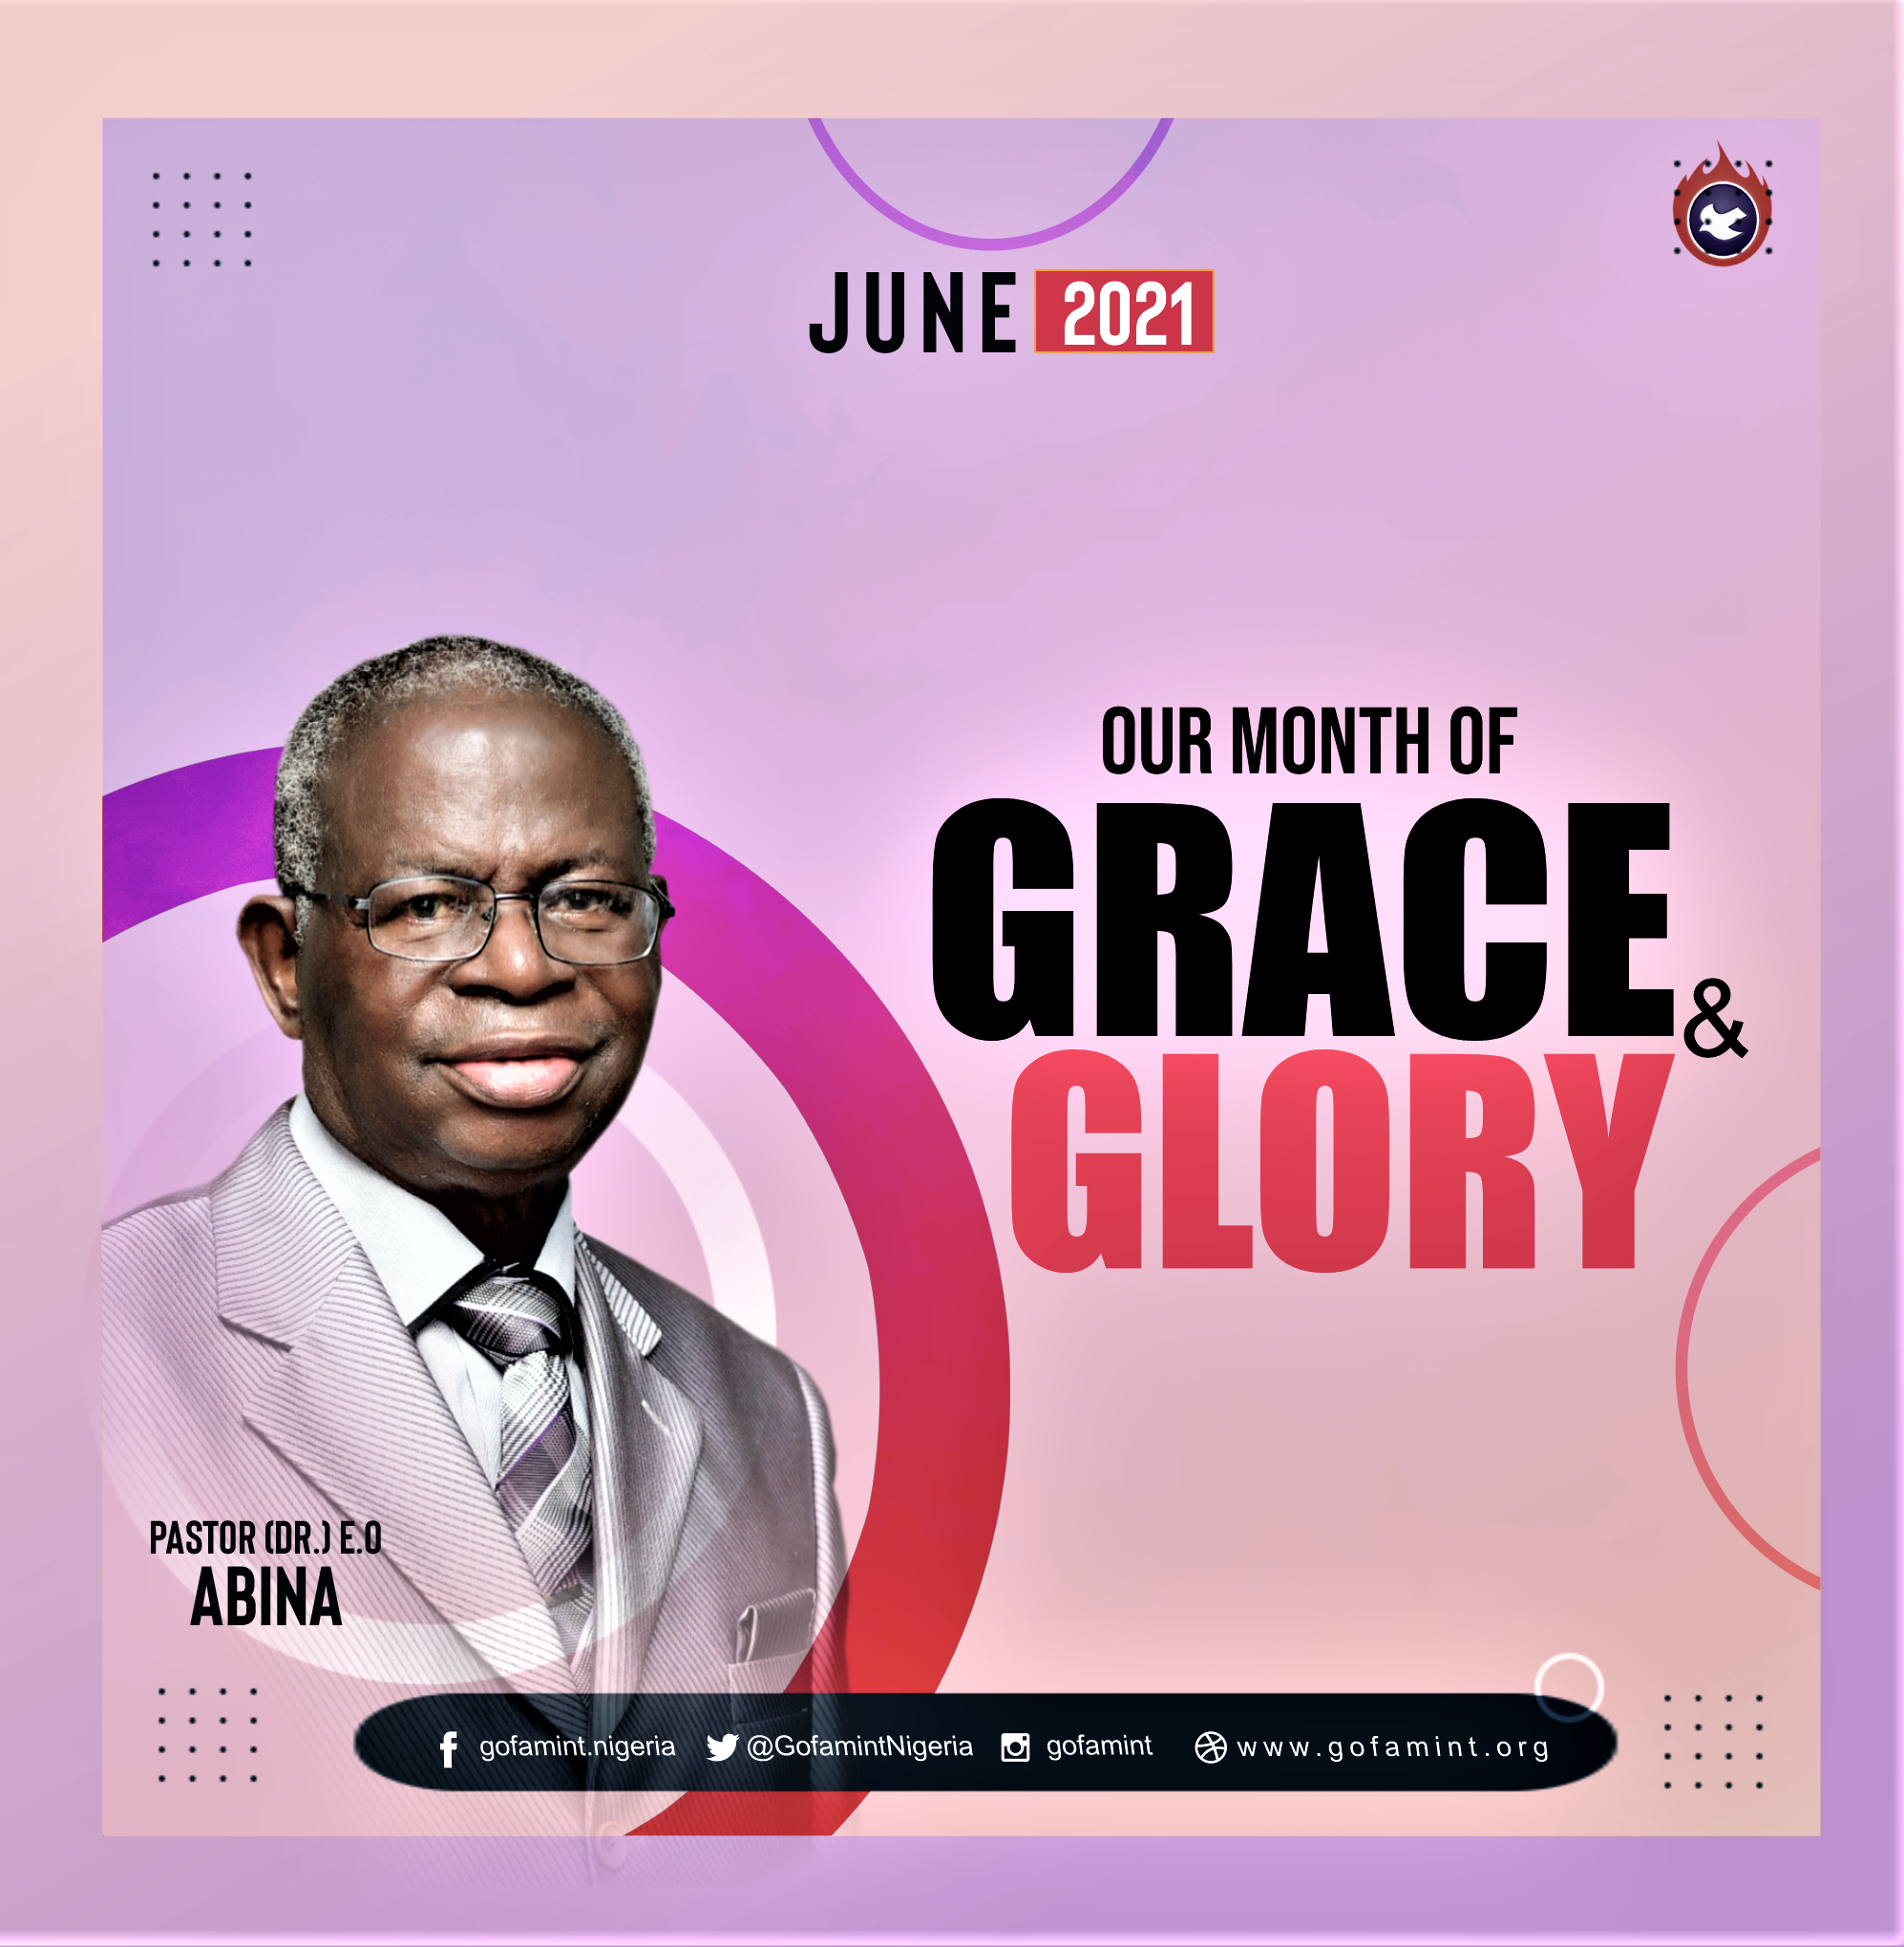 PROPHETIC DECLARATION FOR THE MONTH OF JUNE 2021